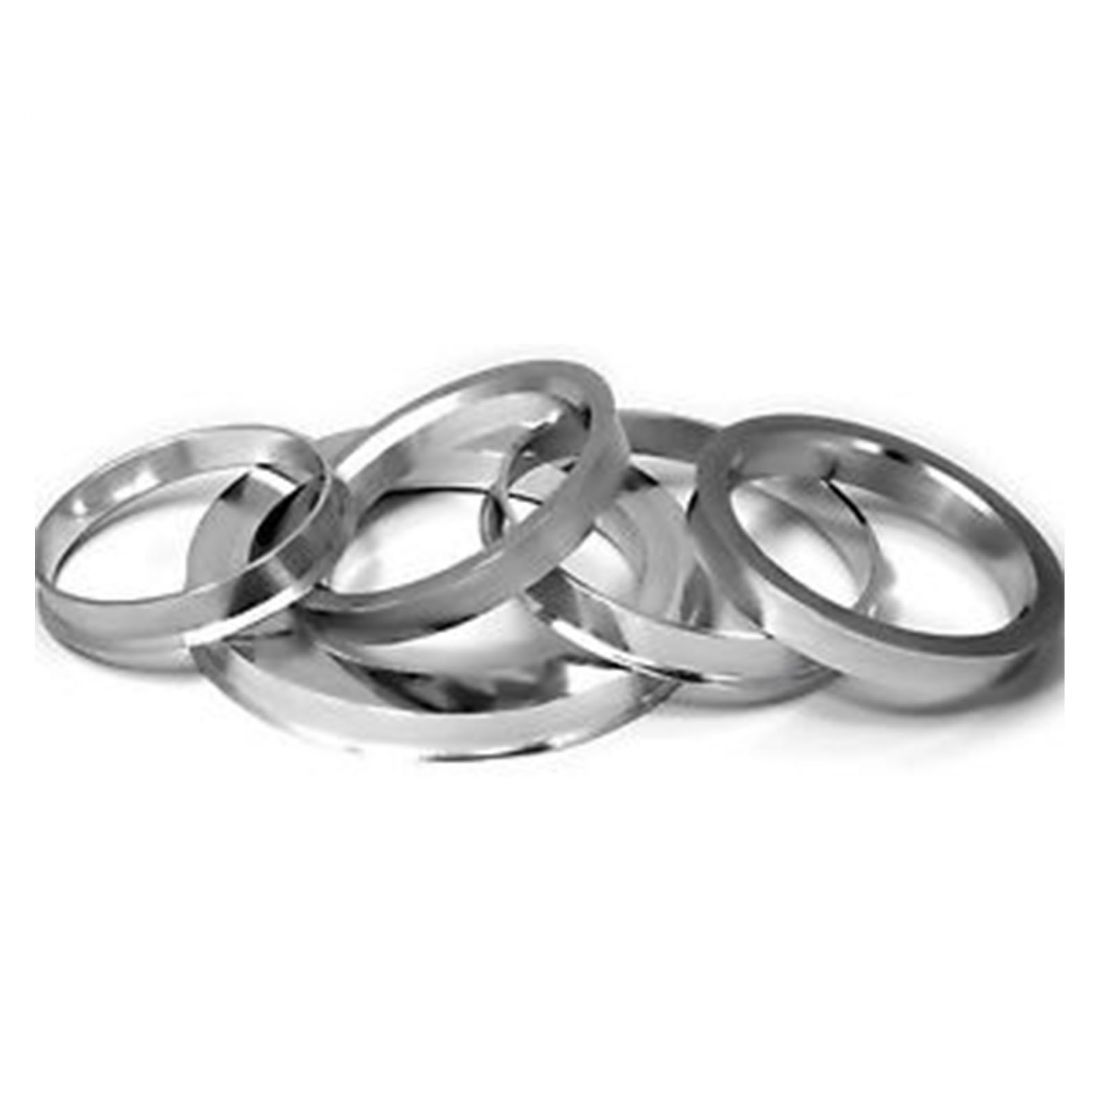 store rings ring mm steel htm pc forged